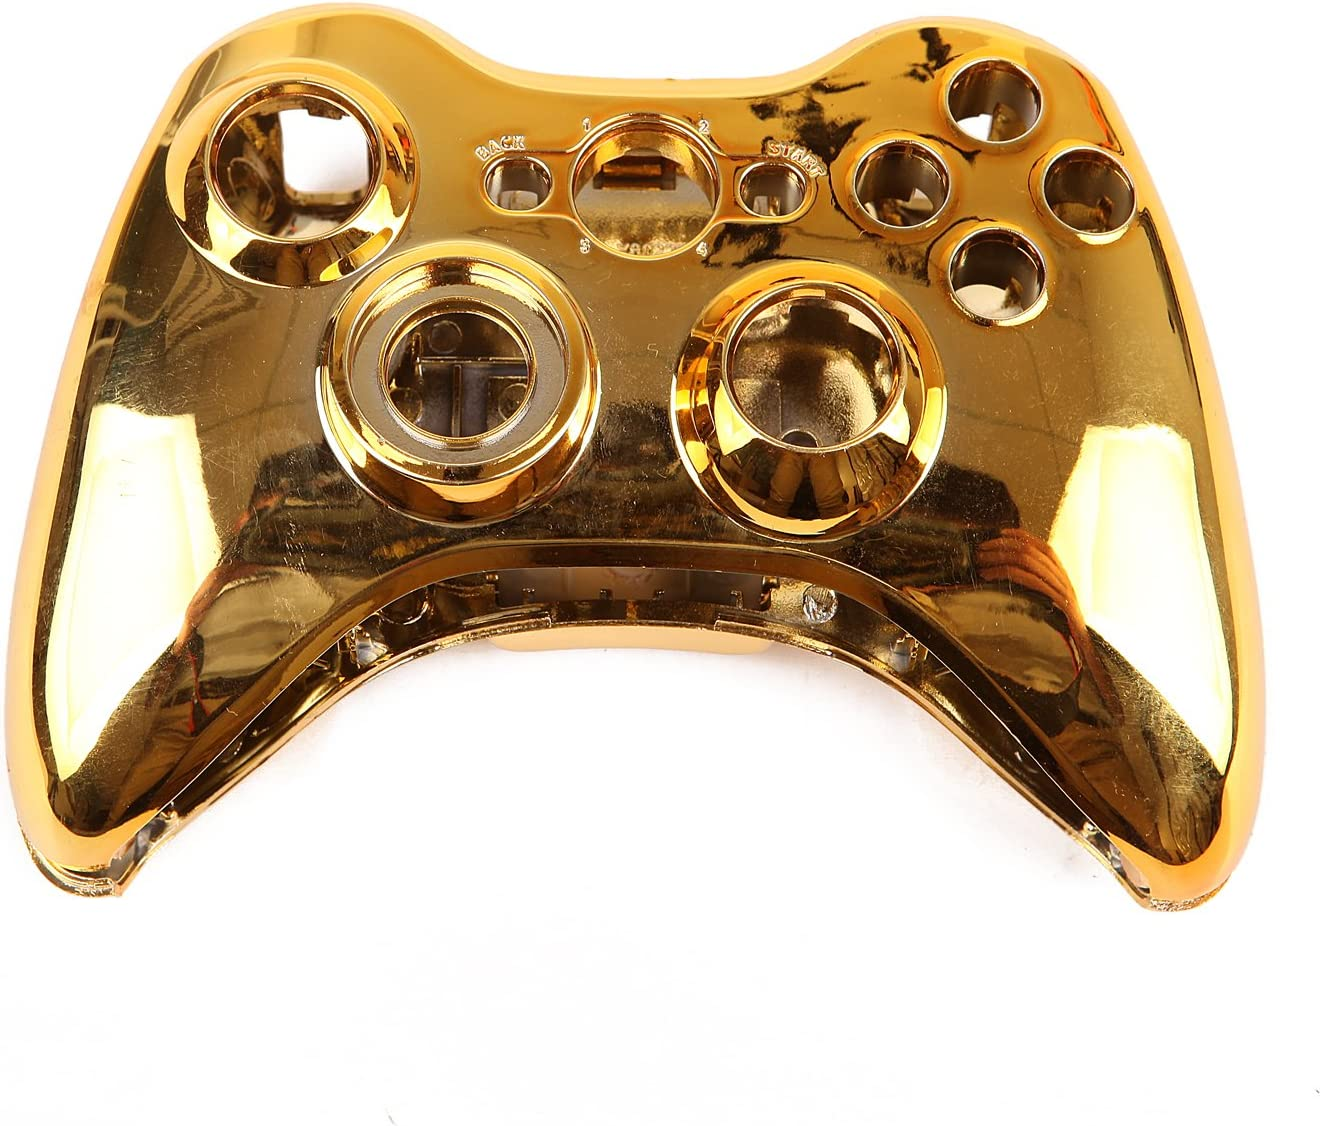 Amazon com: HDE Controller Shell for Xbox 360 Gold Chrome